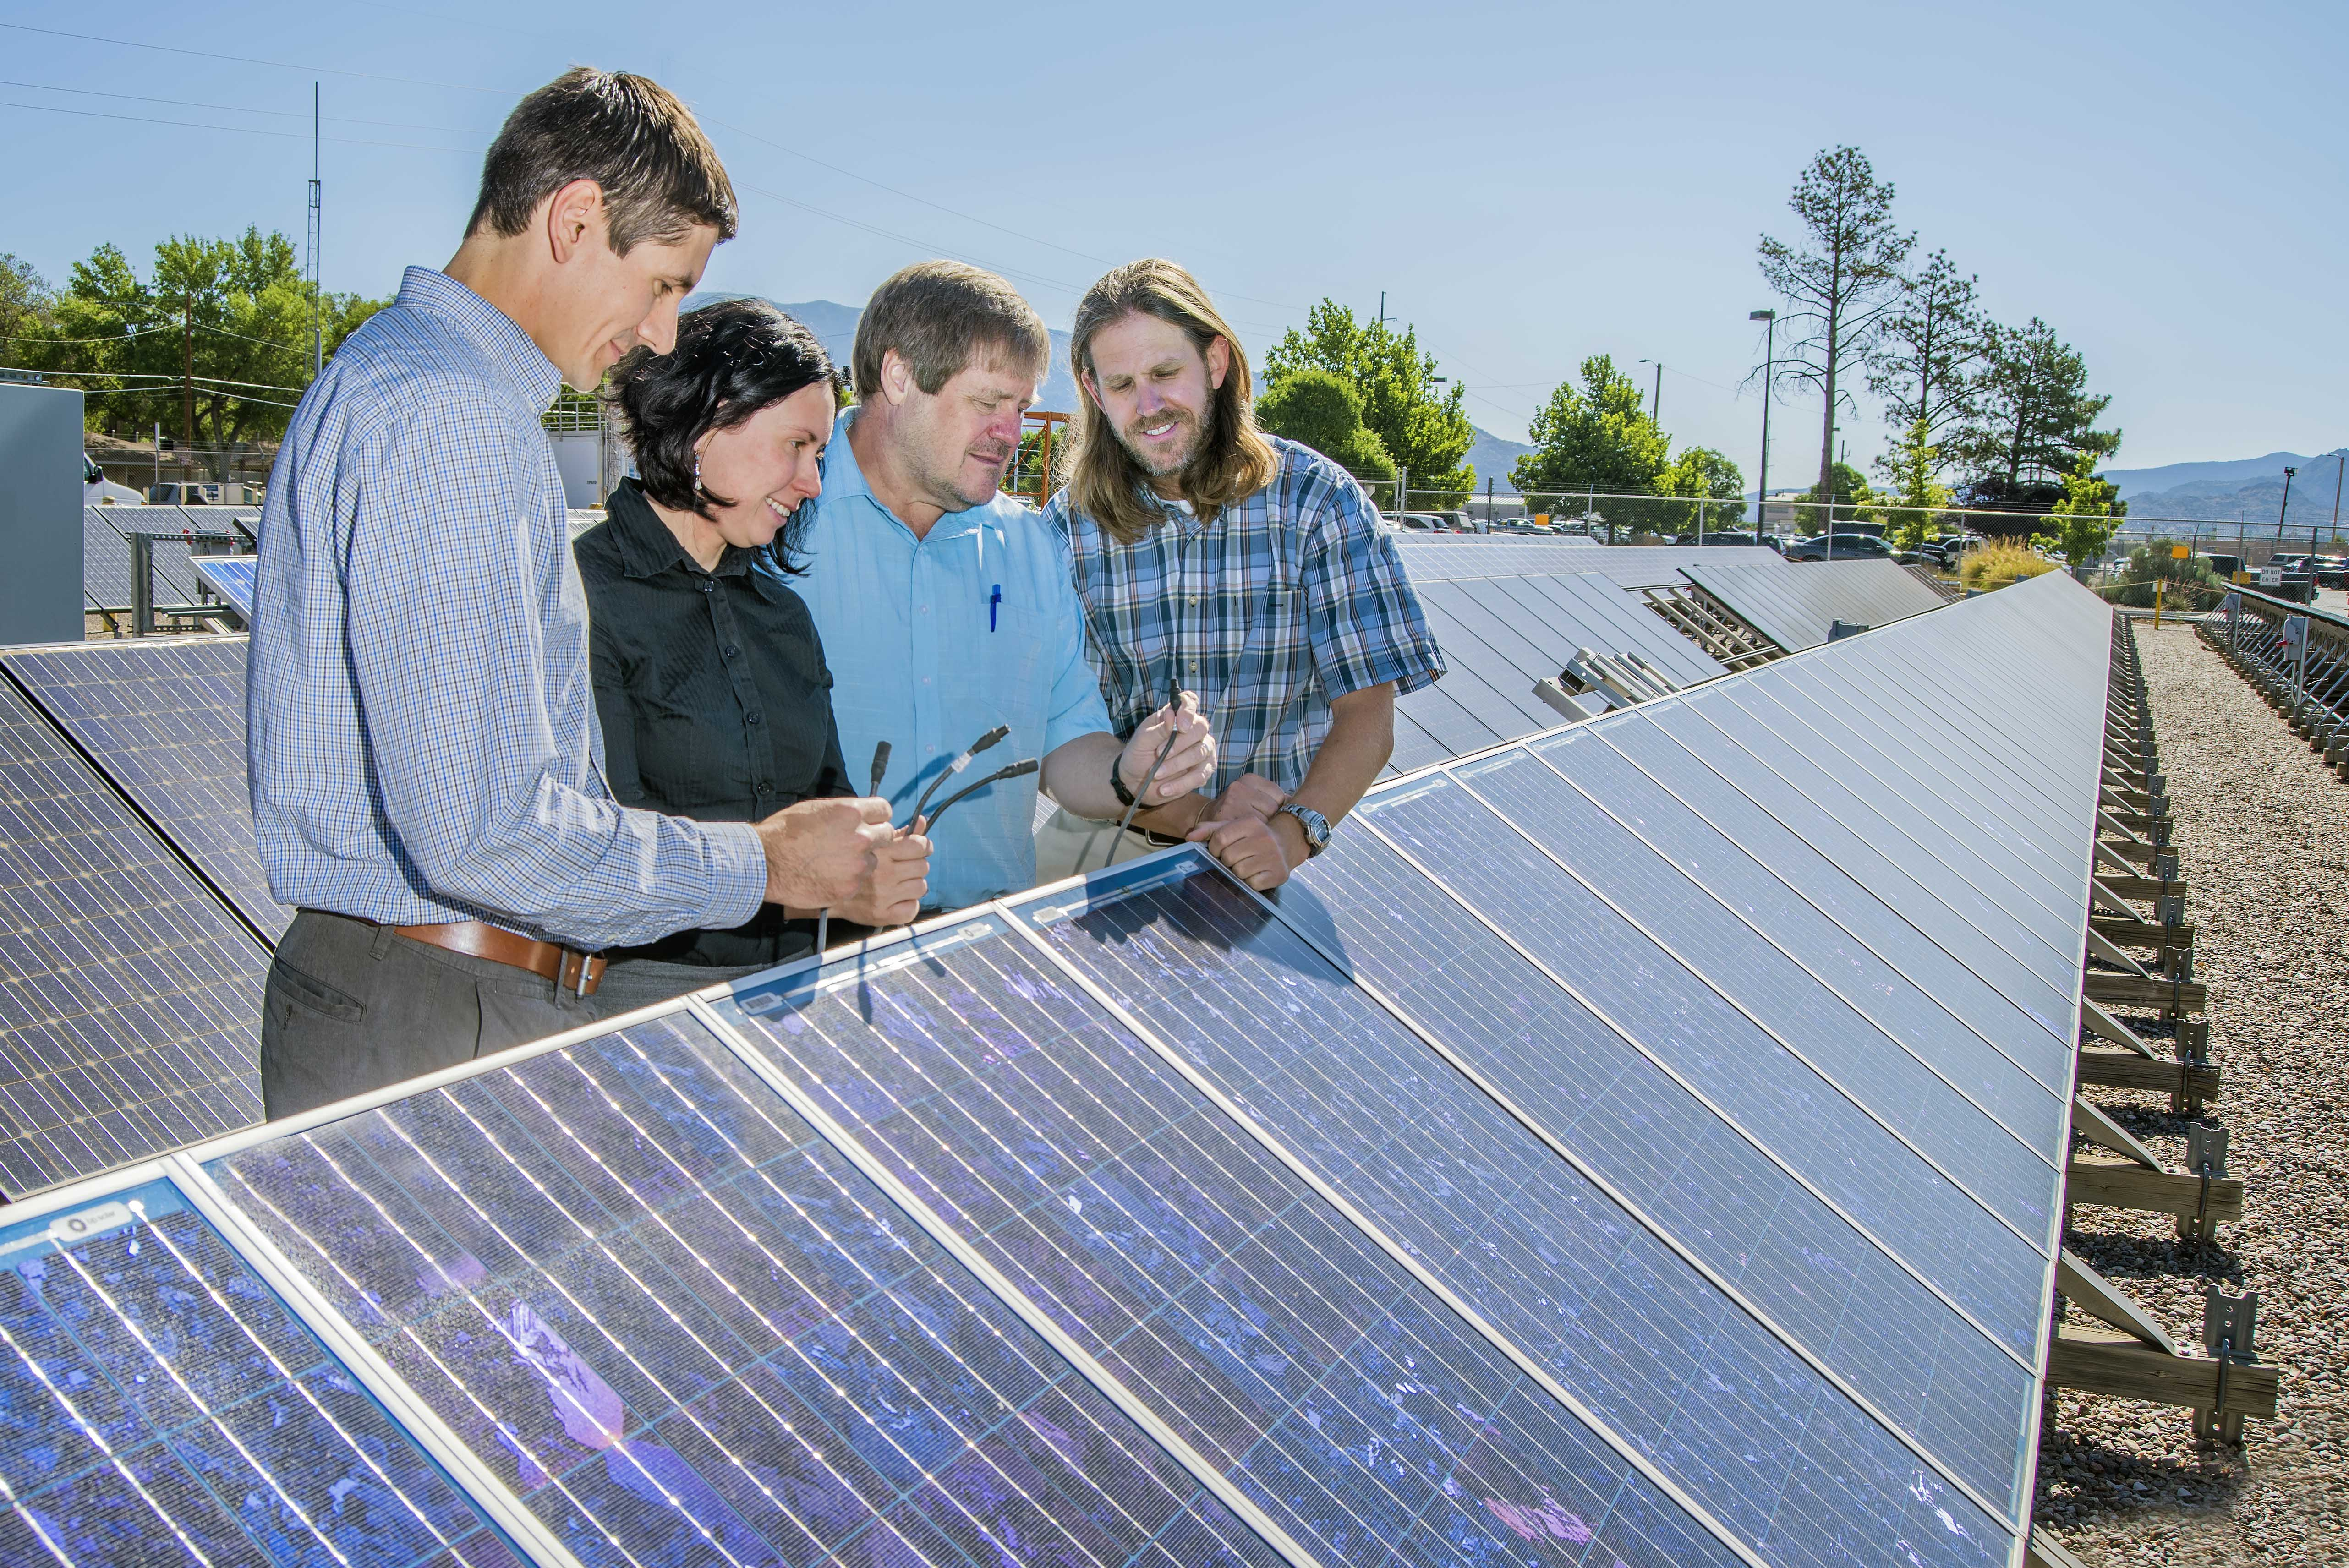 Corrosion National Lab Researchers Work To Battle Solar Panel Corrosion